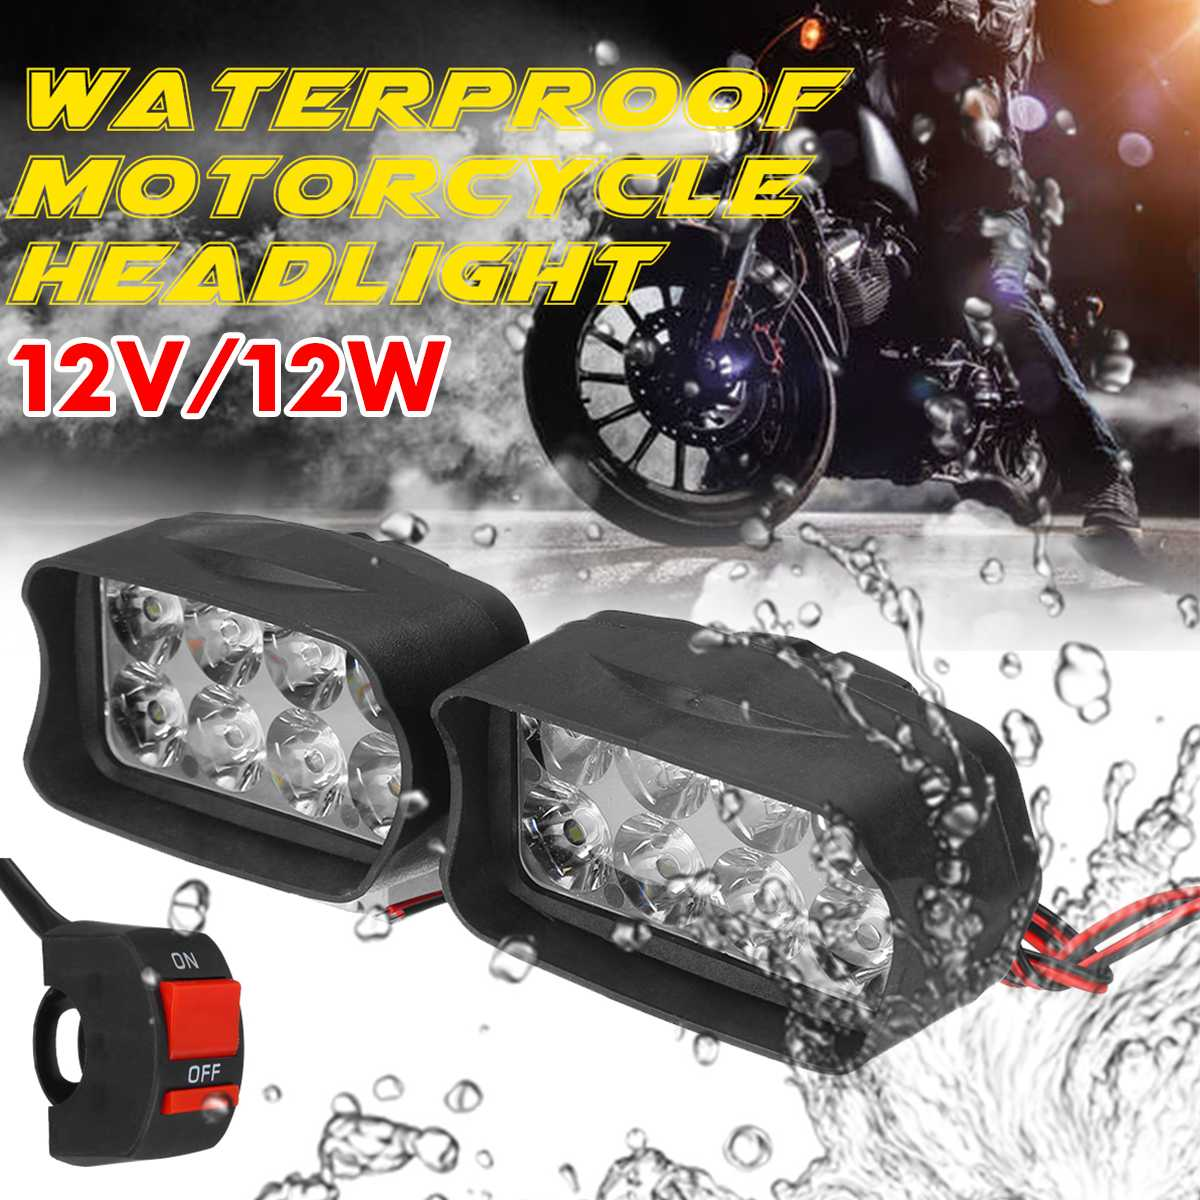 12V 12W Motorcycle LED Headlights Spotlights Super Bright Fog Spot Lamp Waterproof Auxiliary Driving Lights Headlamp With ON OFF